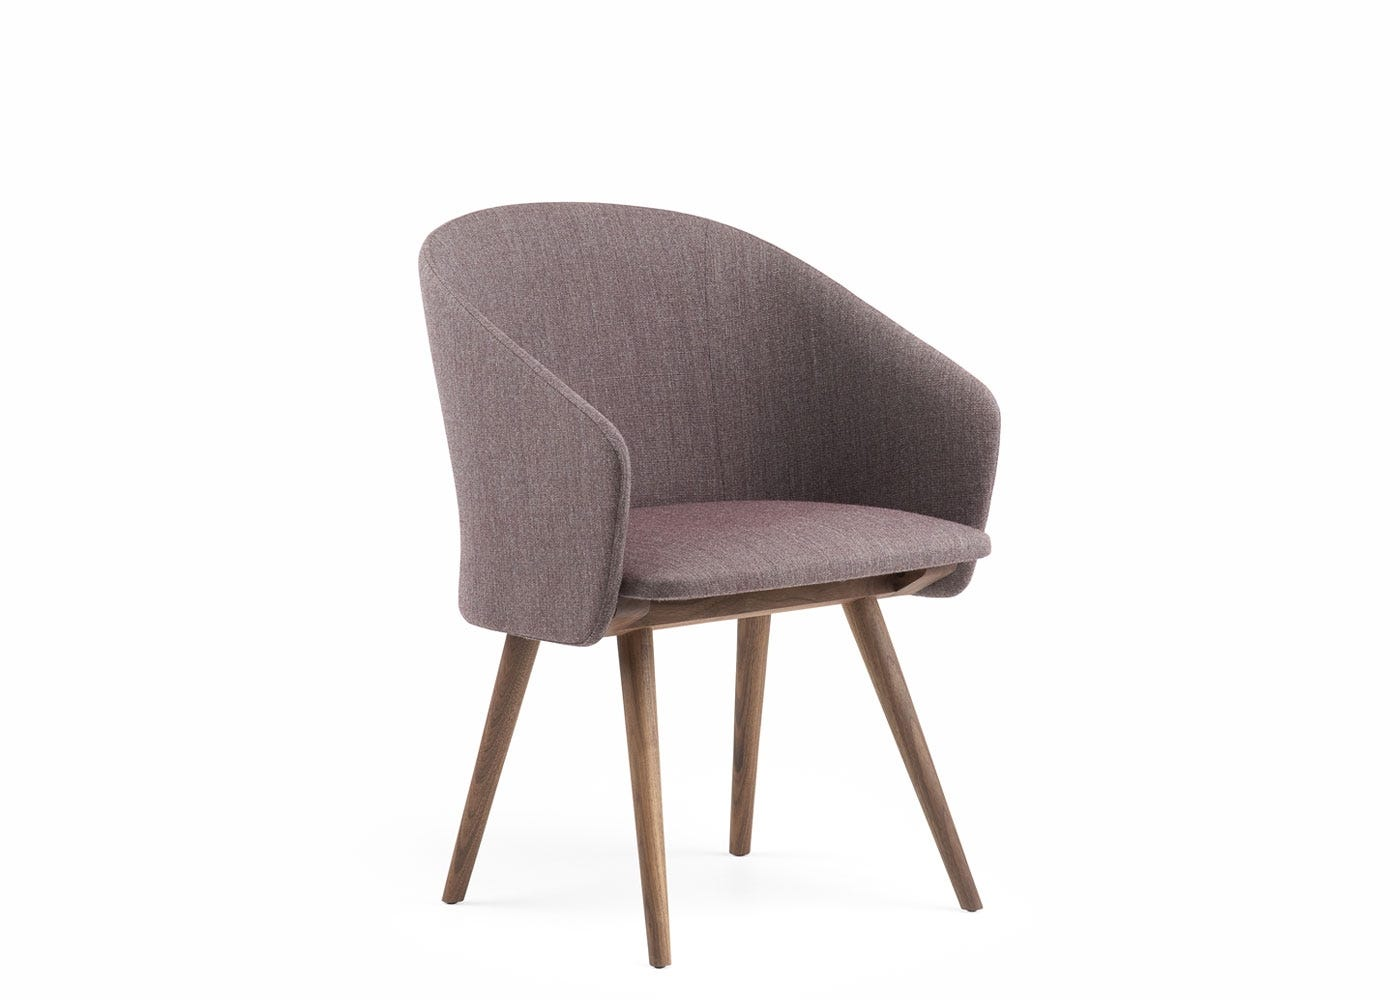 Saia dining chair upholstered in red foss - side view.